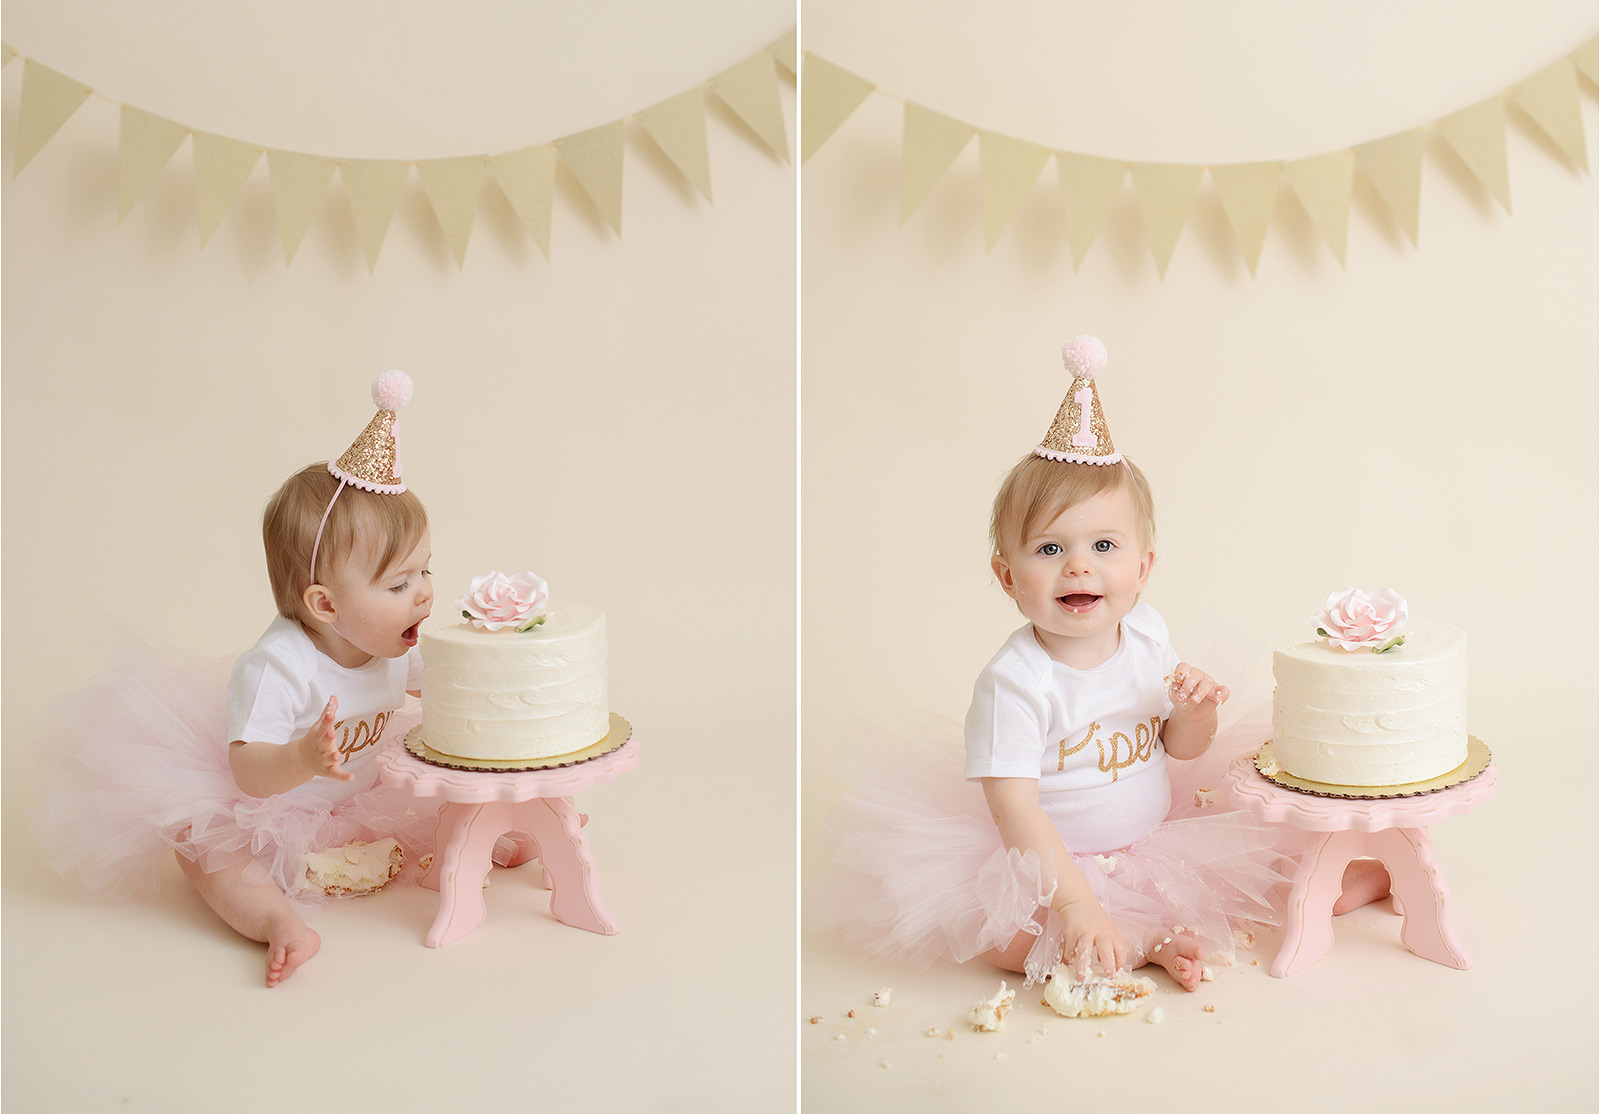 Baby girl wearing pink tutu diving face first into cake against gold bunting